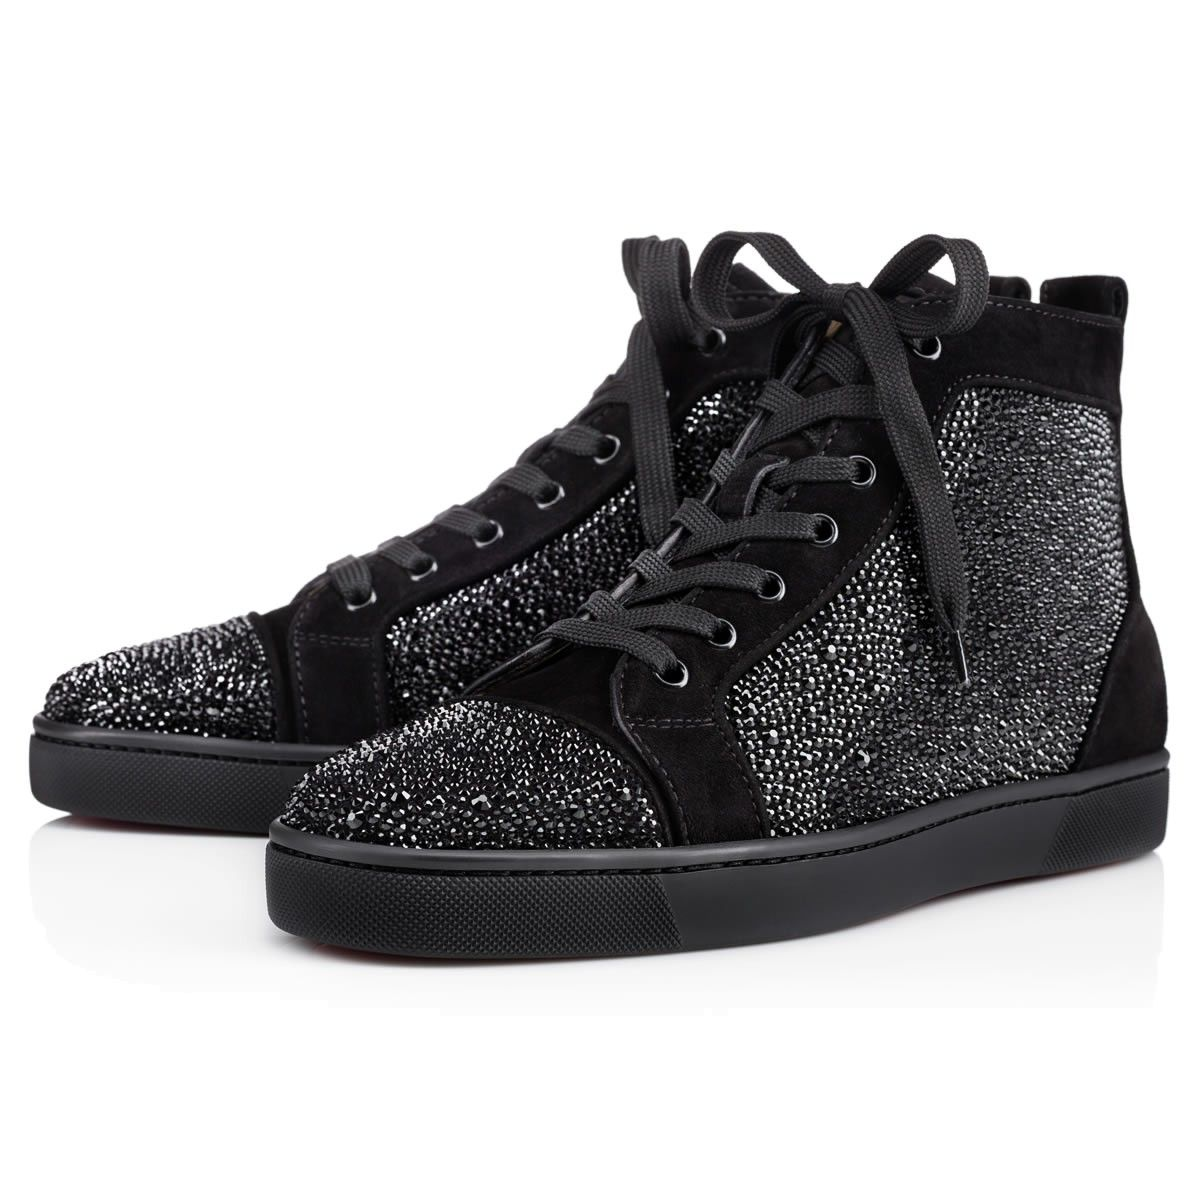 Christian Louboutin United States Official Online Boutique - Louis Strass  Men's Flat Black Strass available online. Discover more Men Shoes by  Christian ...